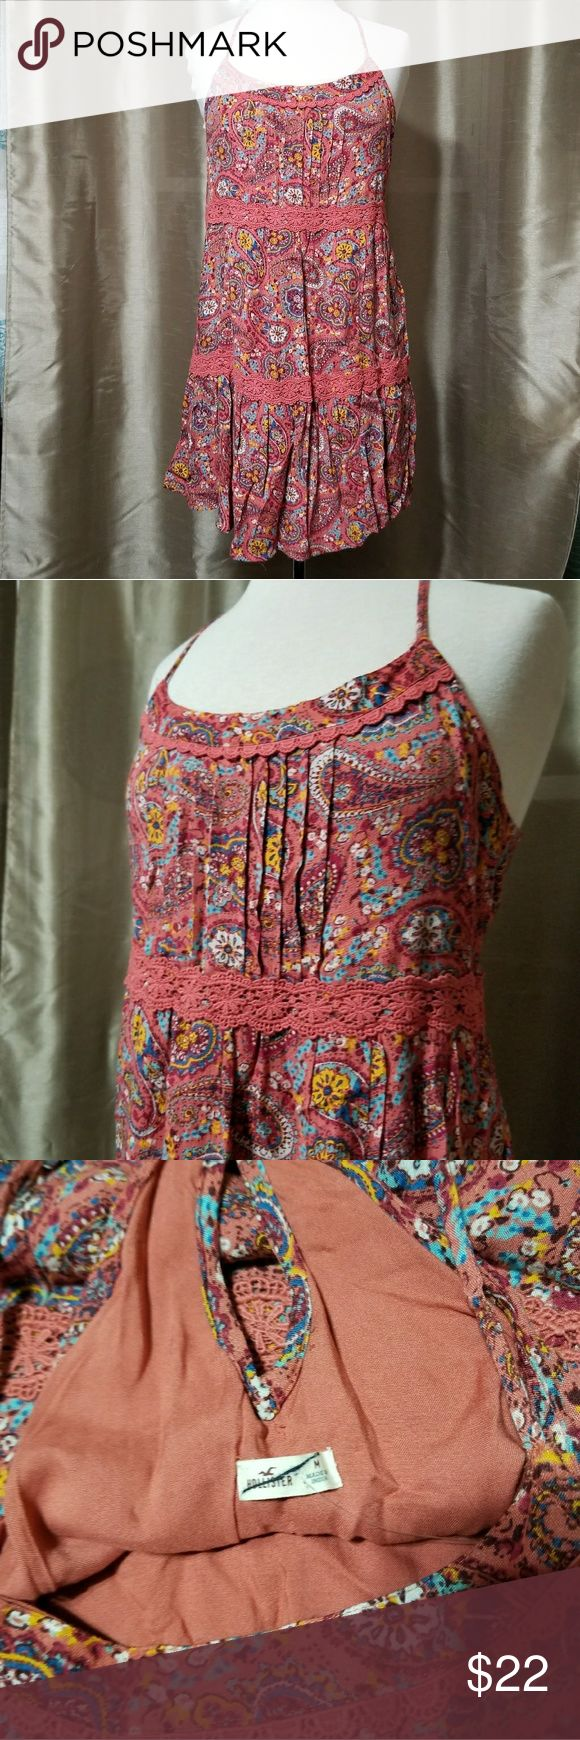 "NWOT Hollister Paisley Women's Sun Dress New without tags. Has adjustable straps.  Flat measurements: Pit to pit: Approx 17"" Length from underarm to bottom: Approx 24.5""  🌹 Remember to bundle 3 items and save! 🌹  *A57 Hollister Dresses"